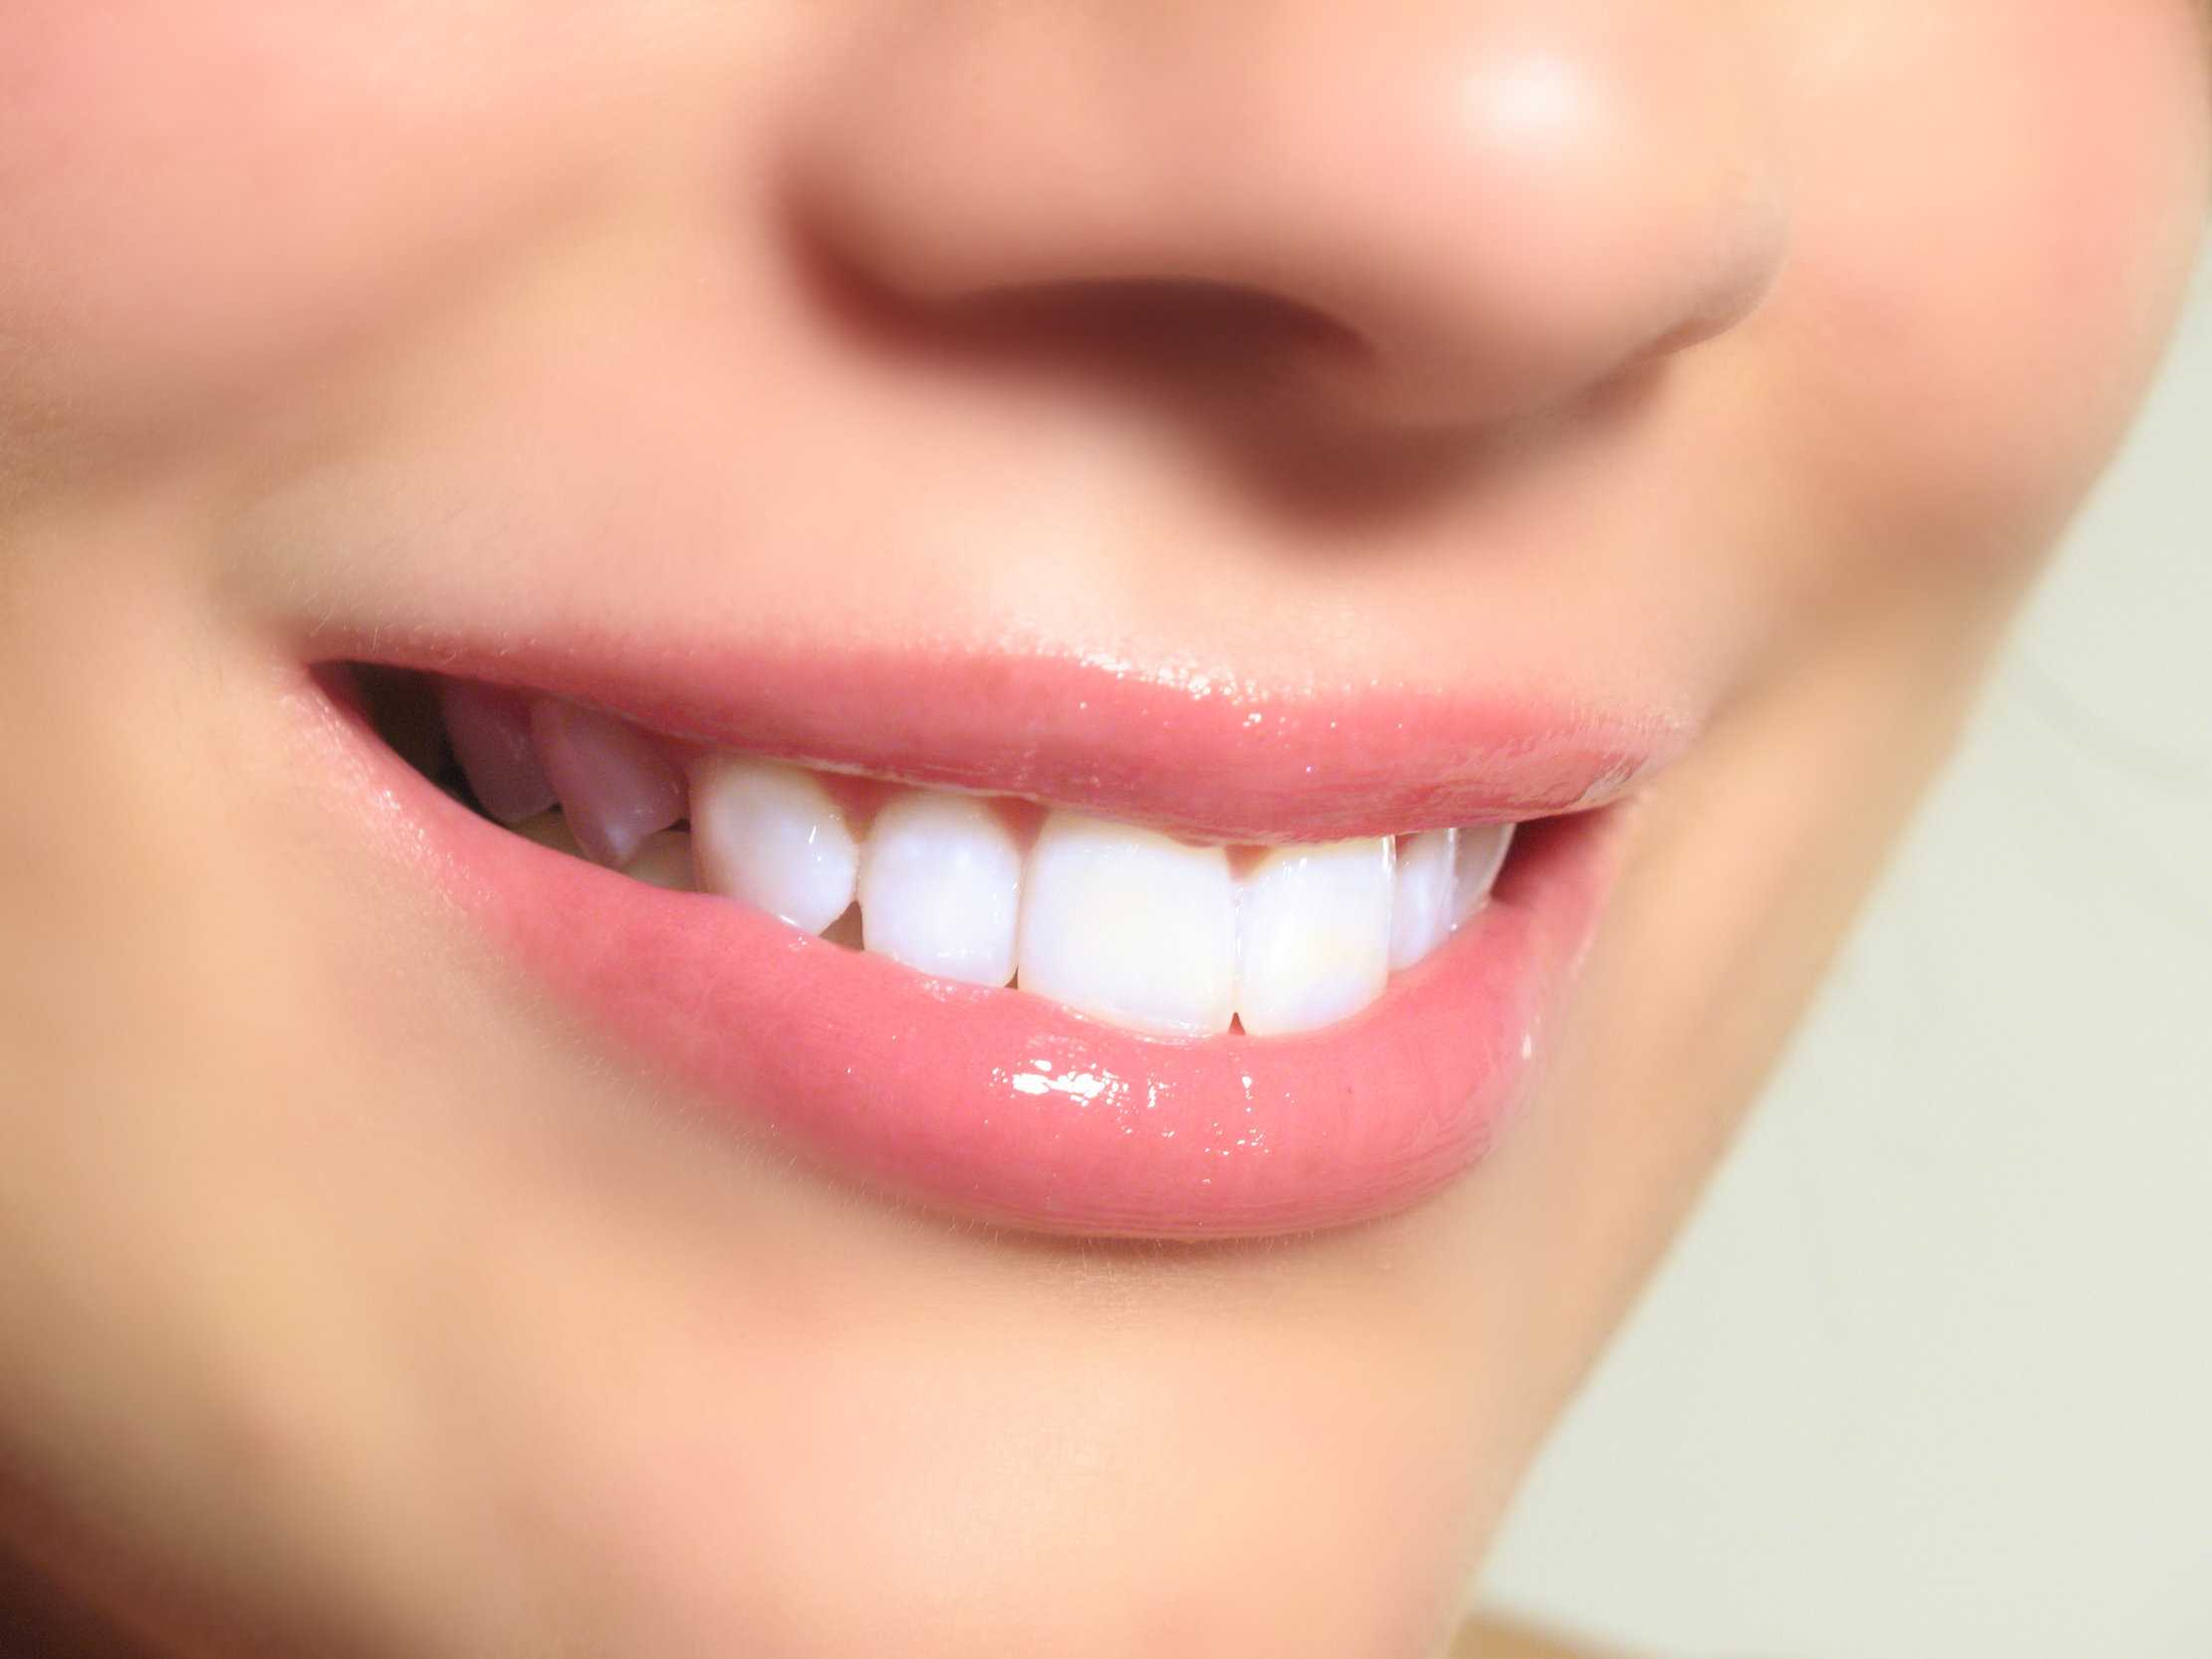 Looking for a Dazzling Smile with Whitening Teeth